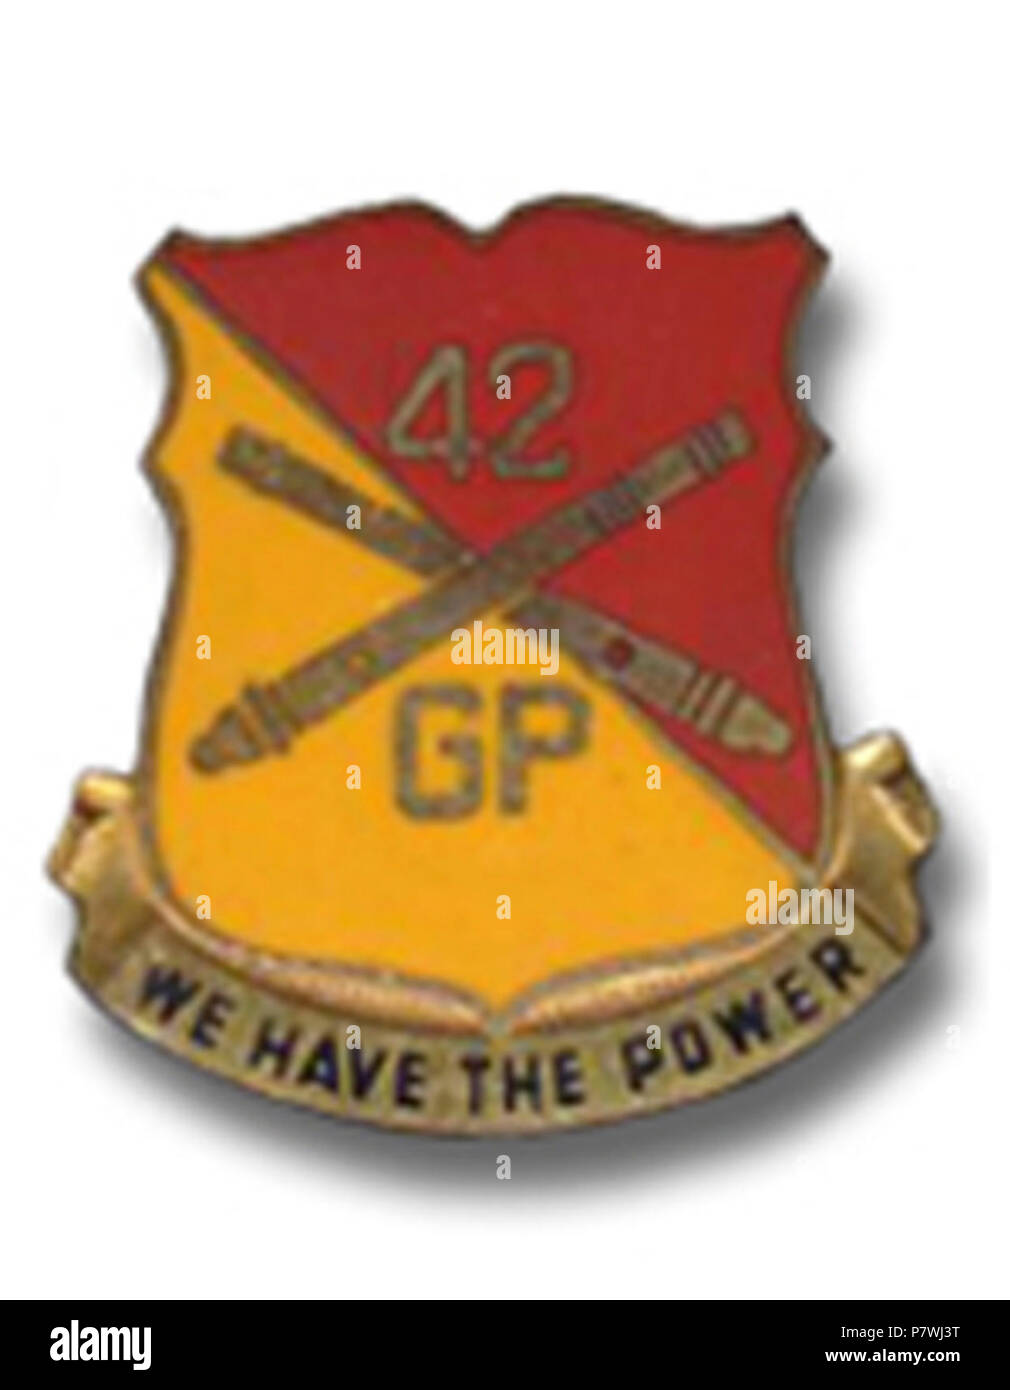 42nd FA Group crest. - Stock Image